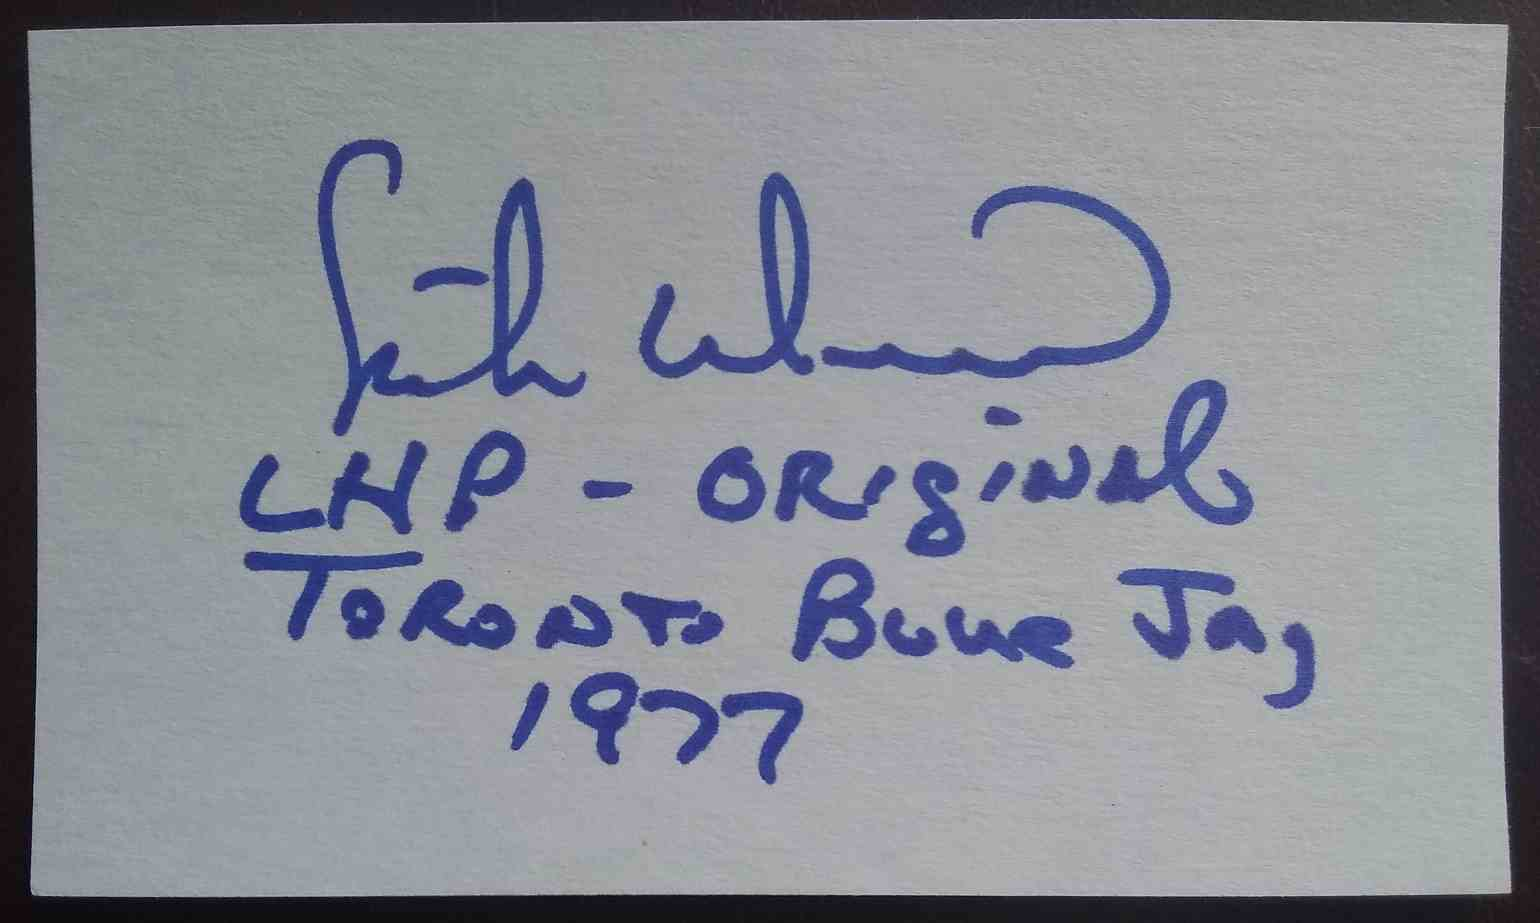 1977 3X5 Mike Willis card back image